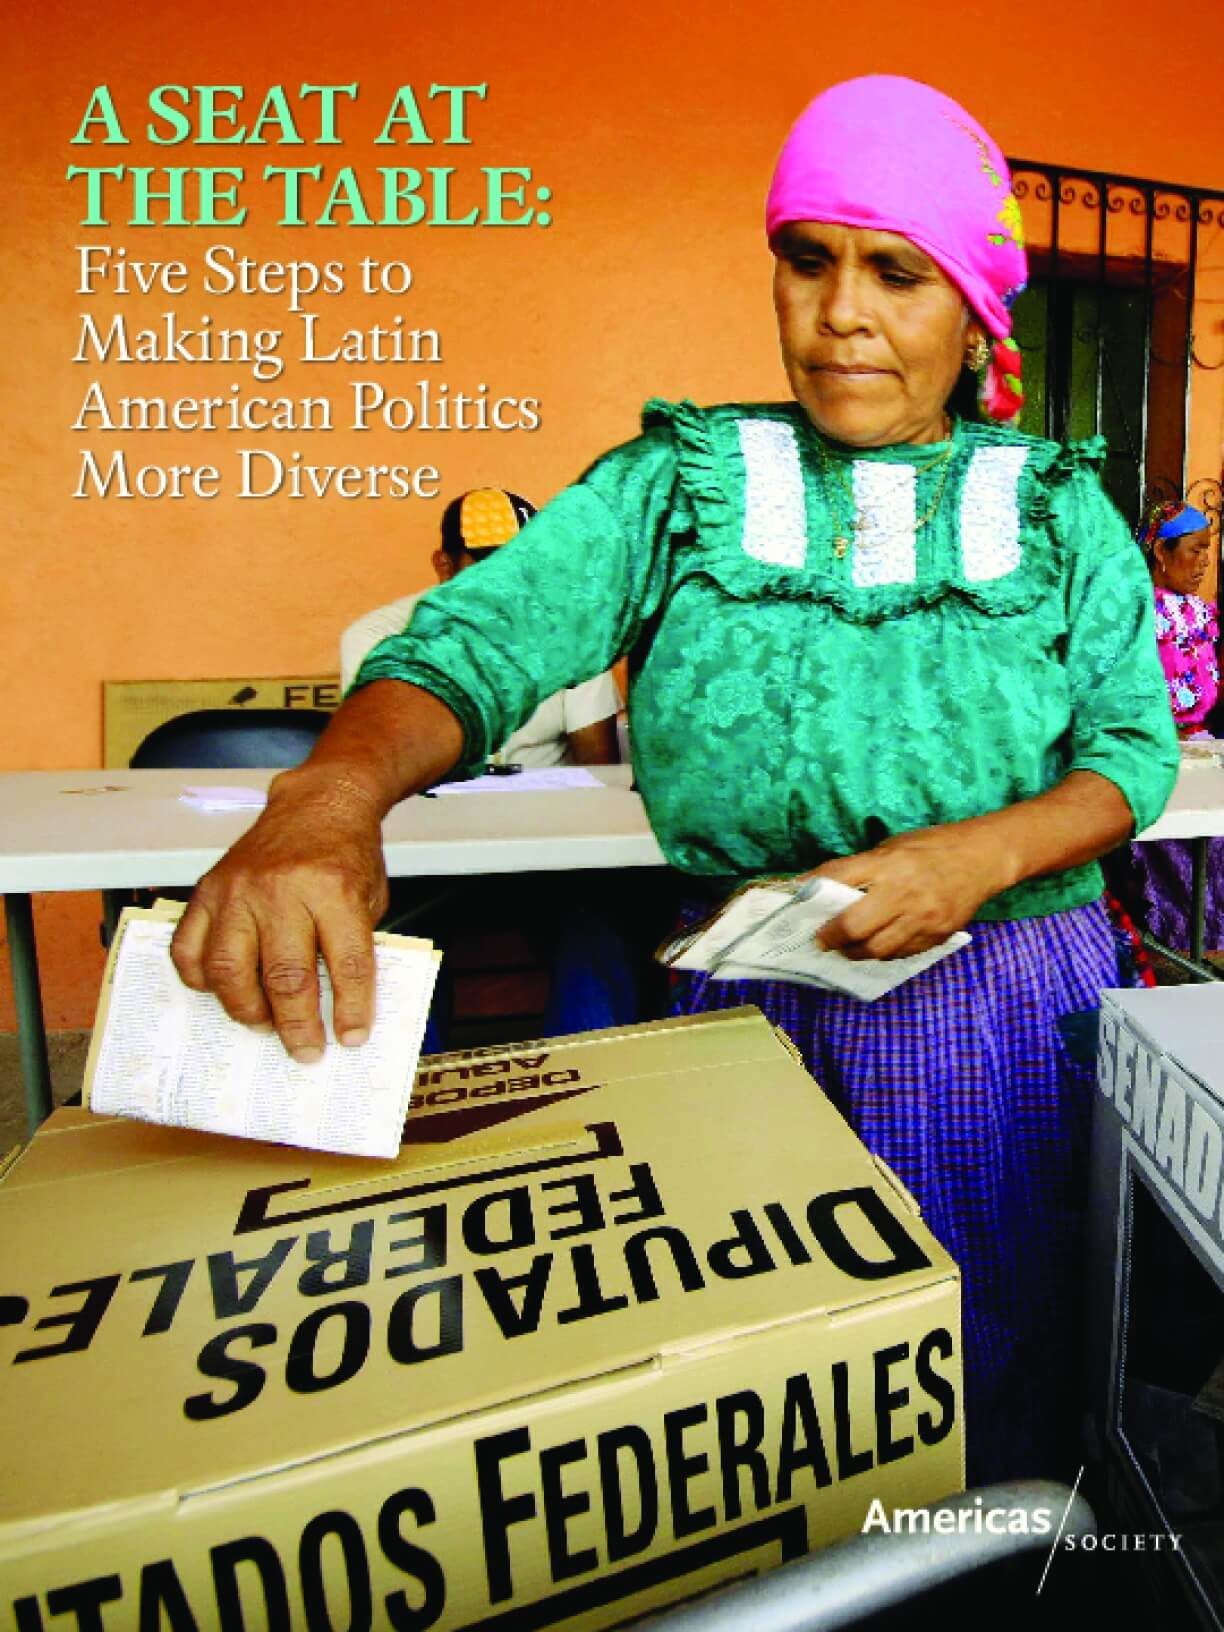 A Seat at the Table: Five Steps to Making Latin American Politics More Diverse